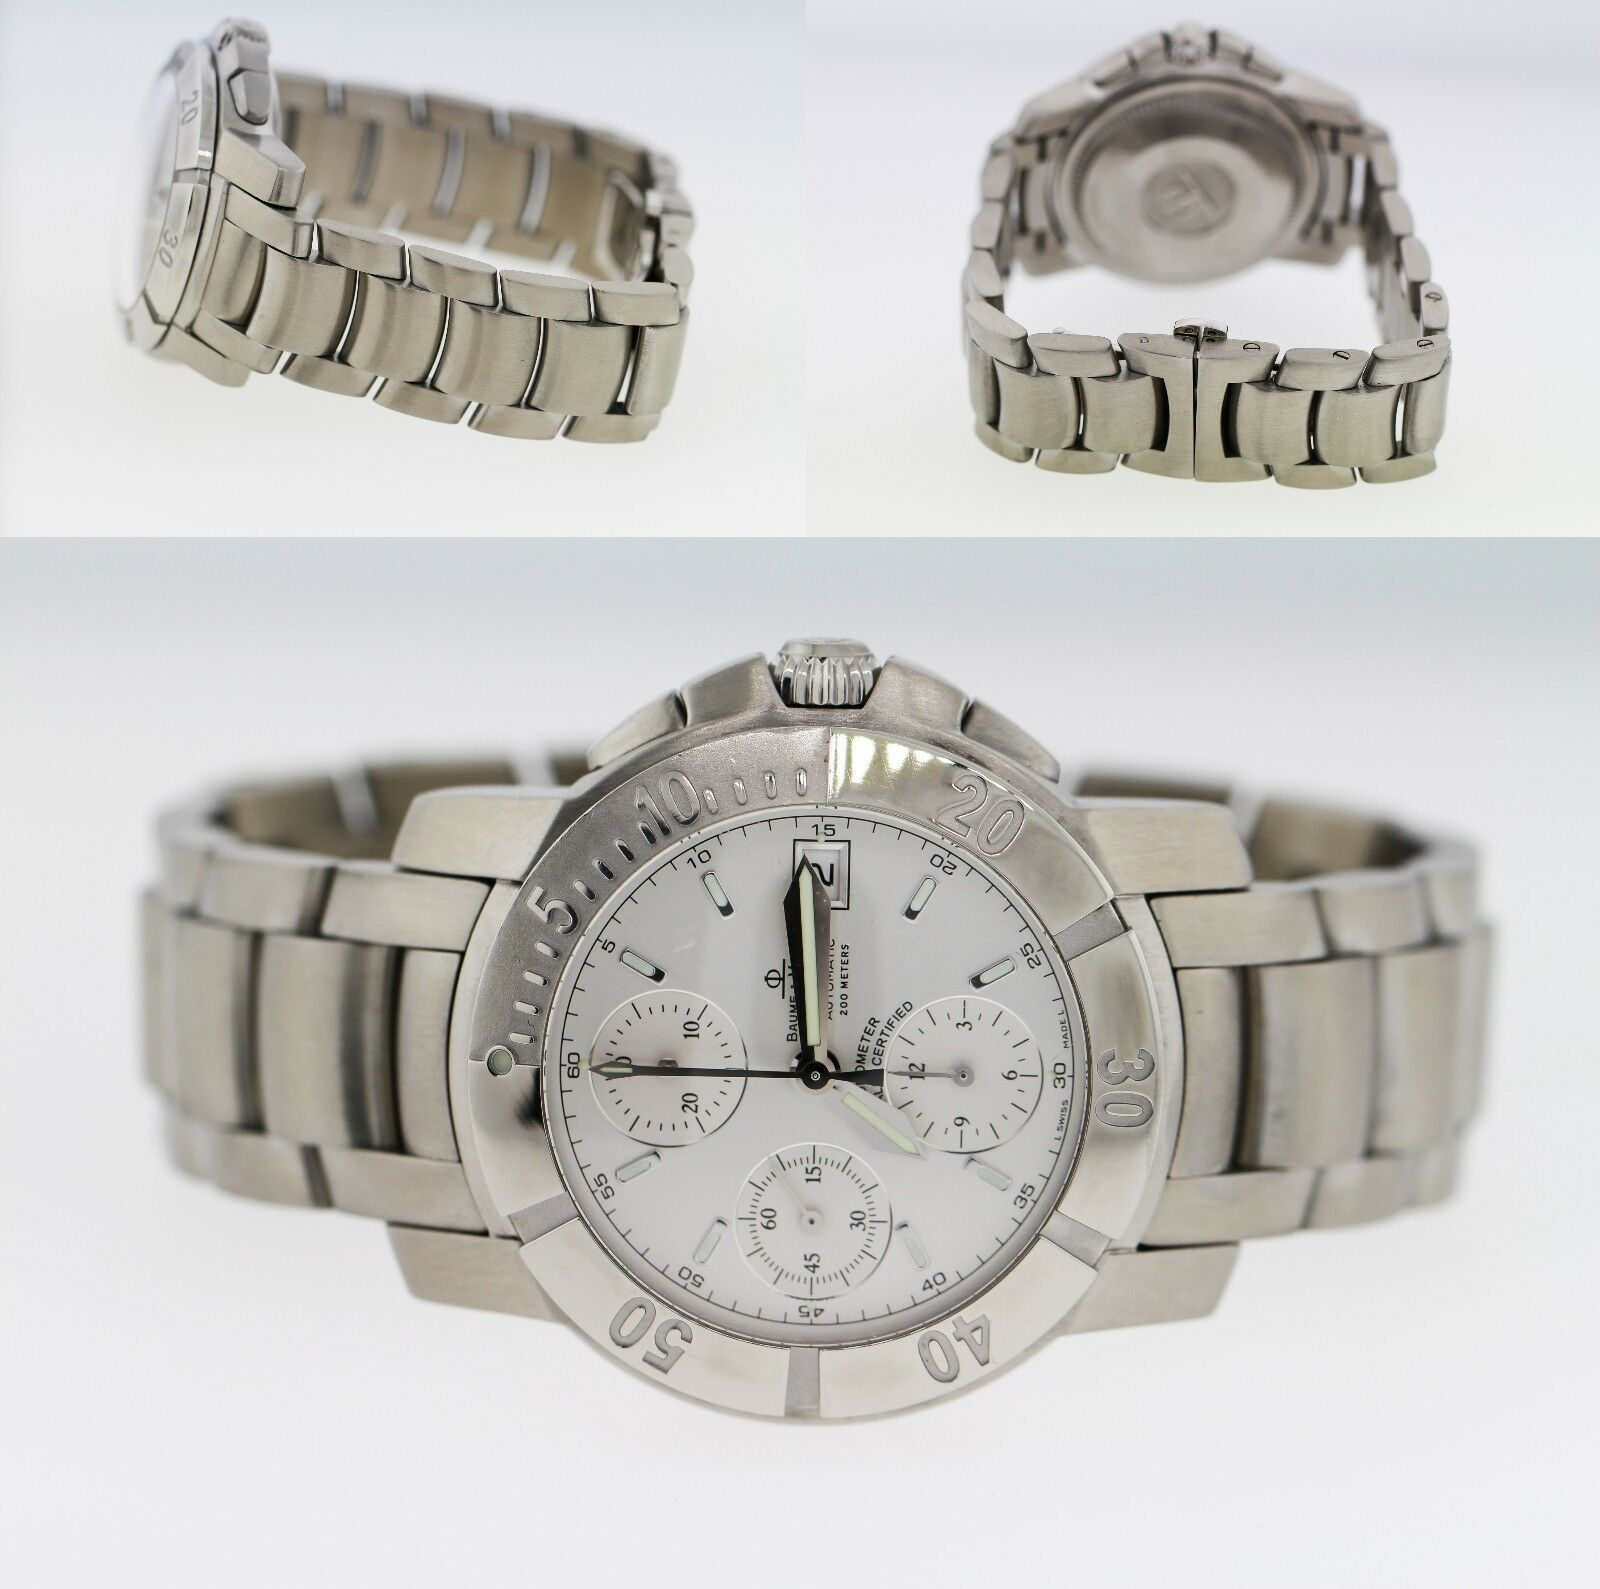 Baume & Mercier Capeland Chronograph Stainless Steel Men's 41mm Watch 65366